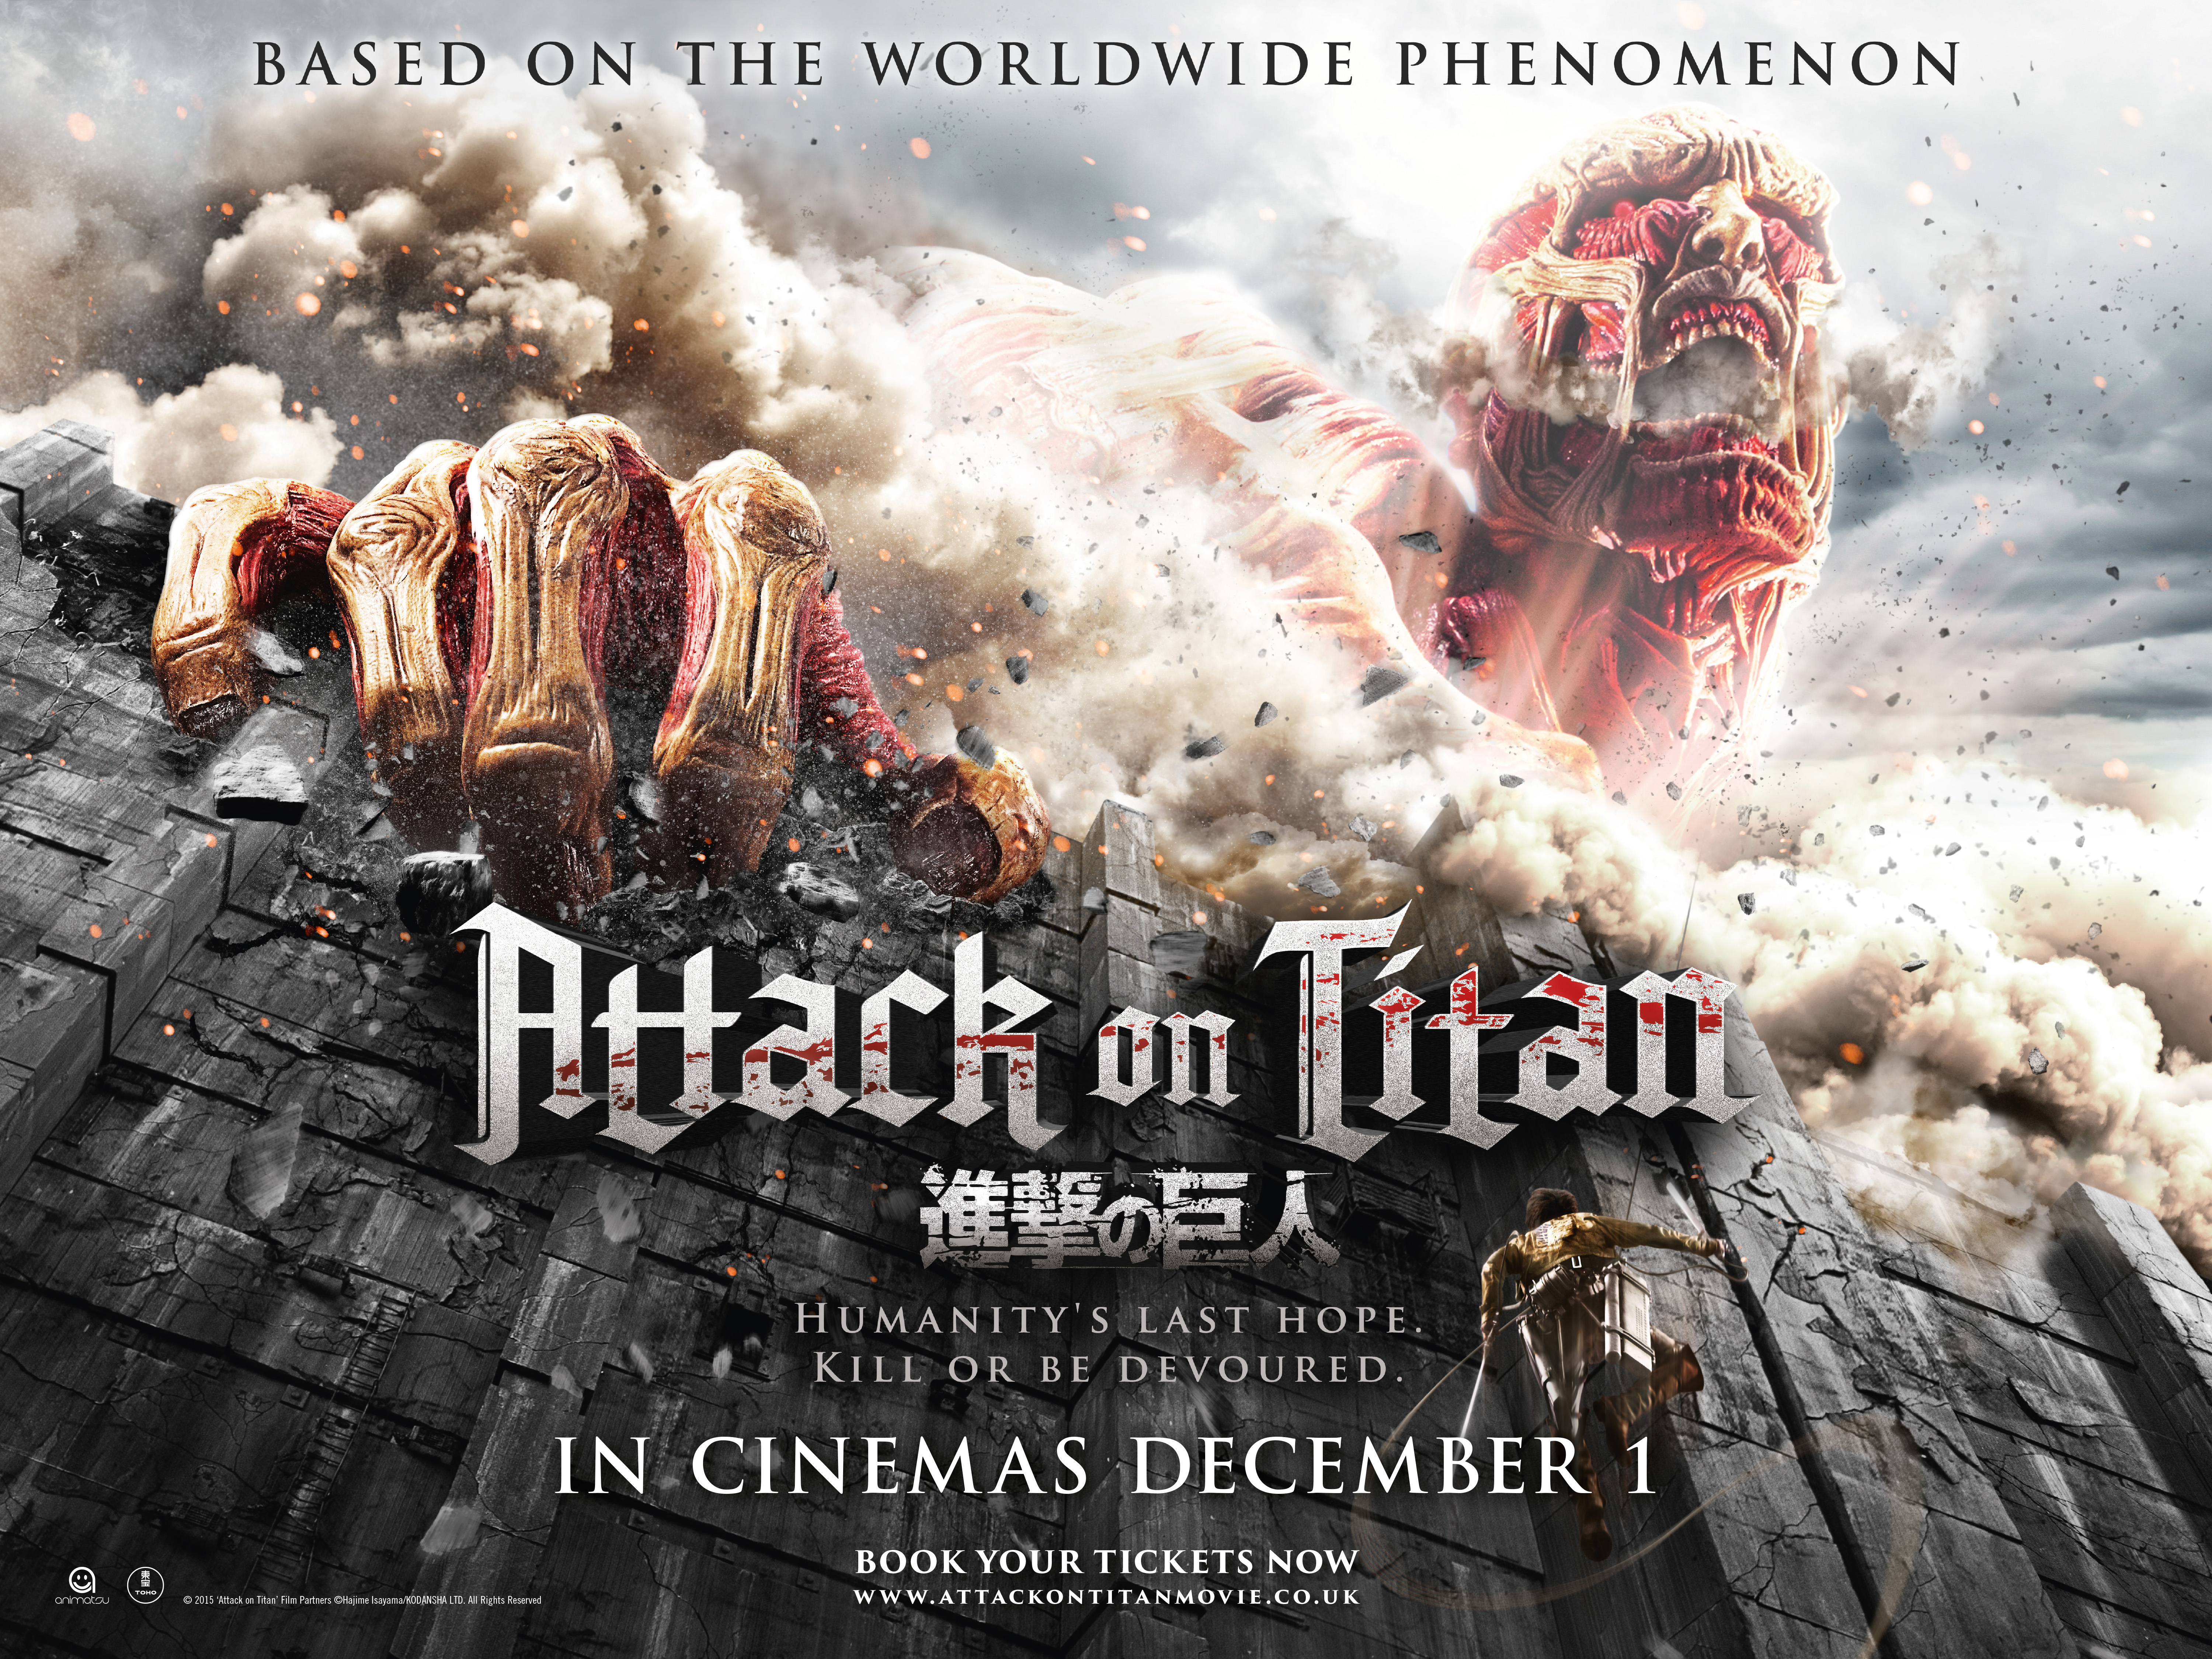 Attack On Titan Part 1 film review: Running From Giants